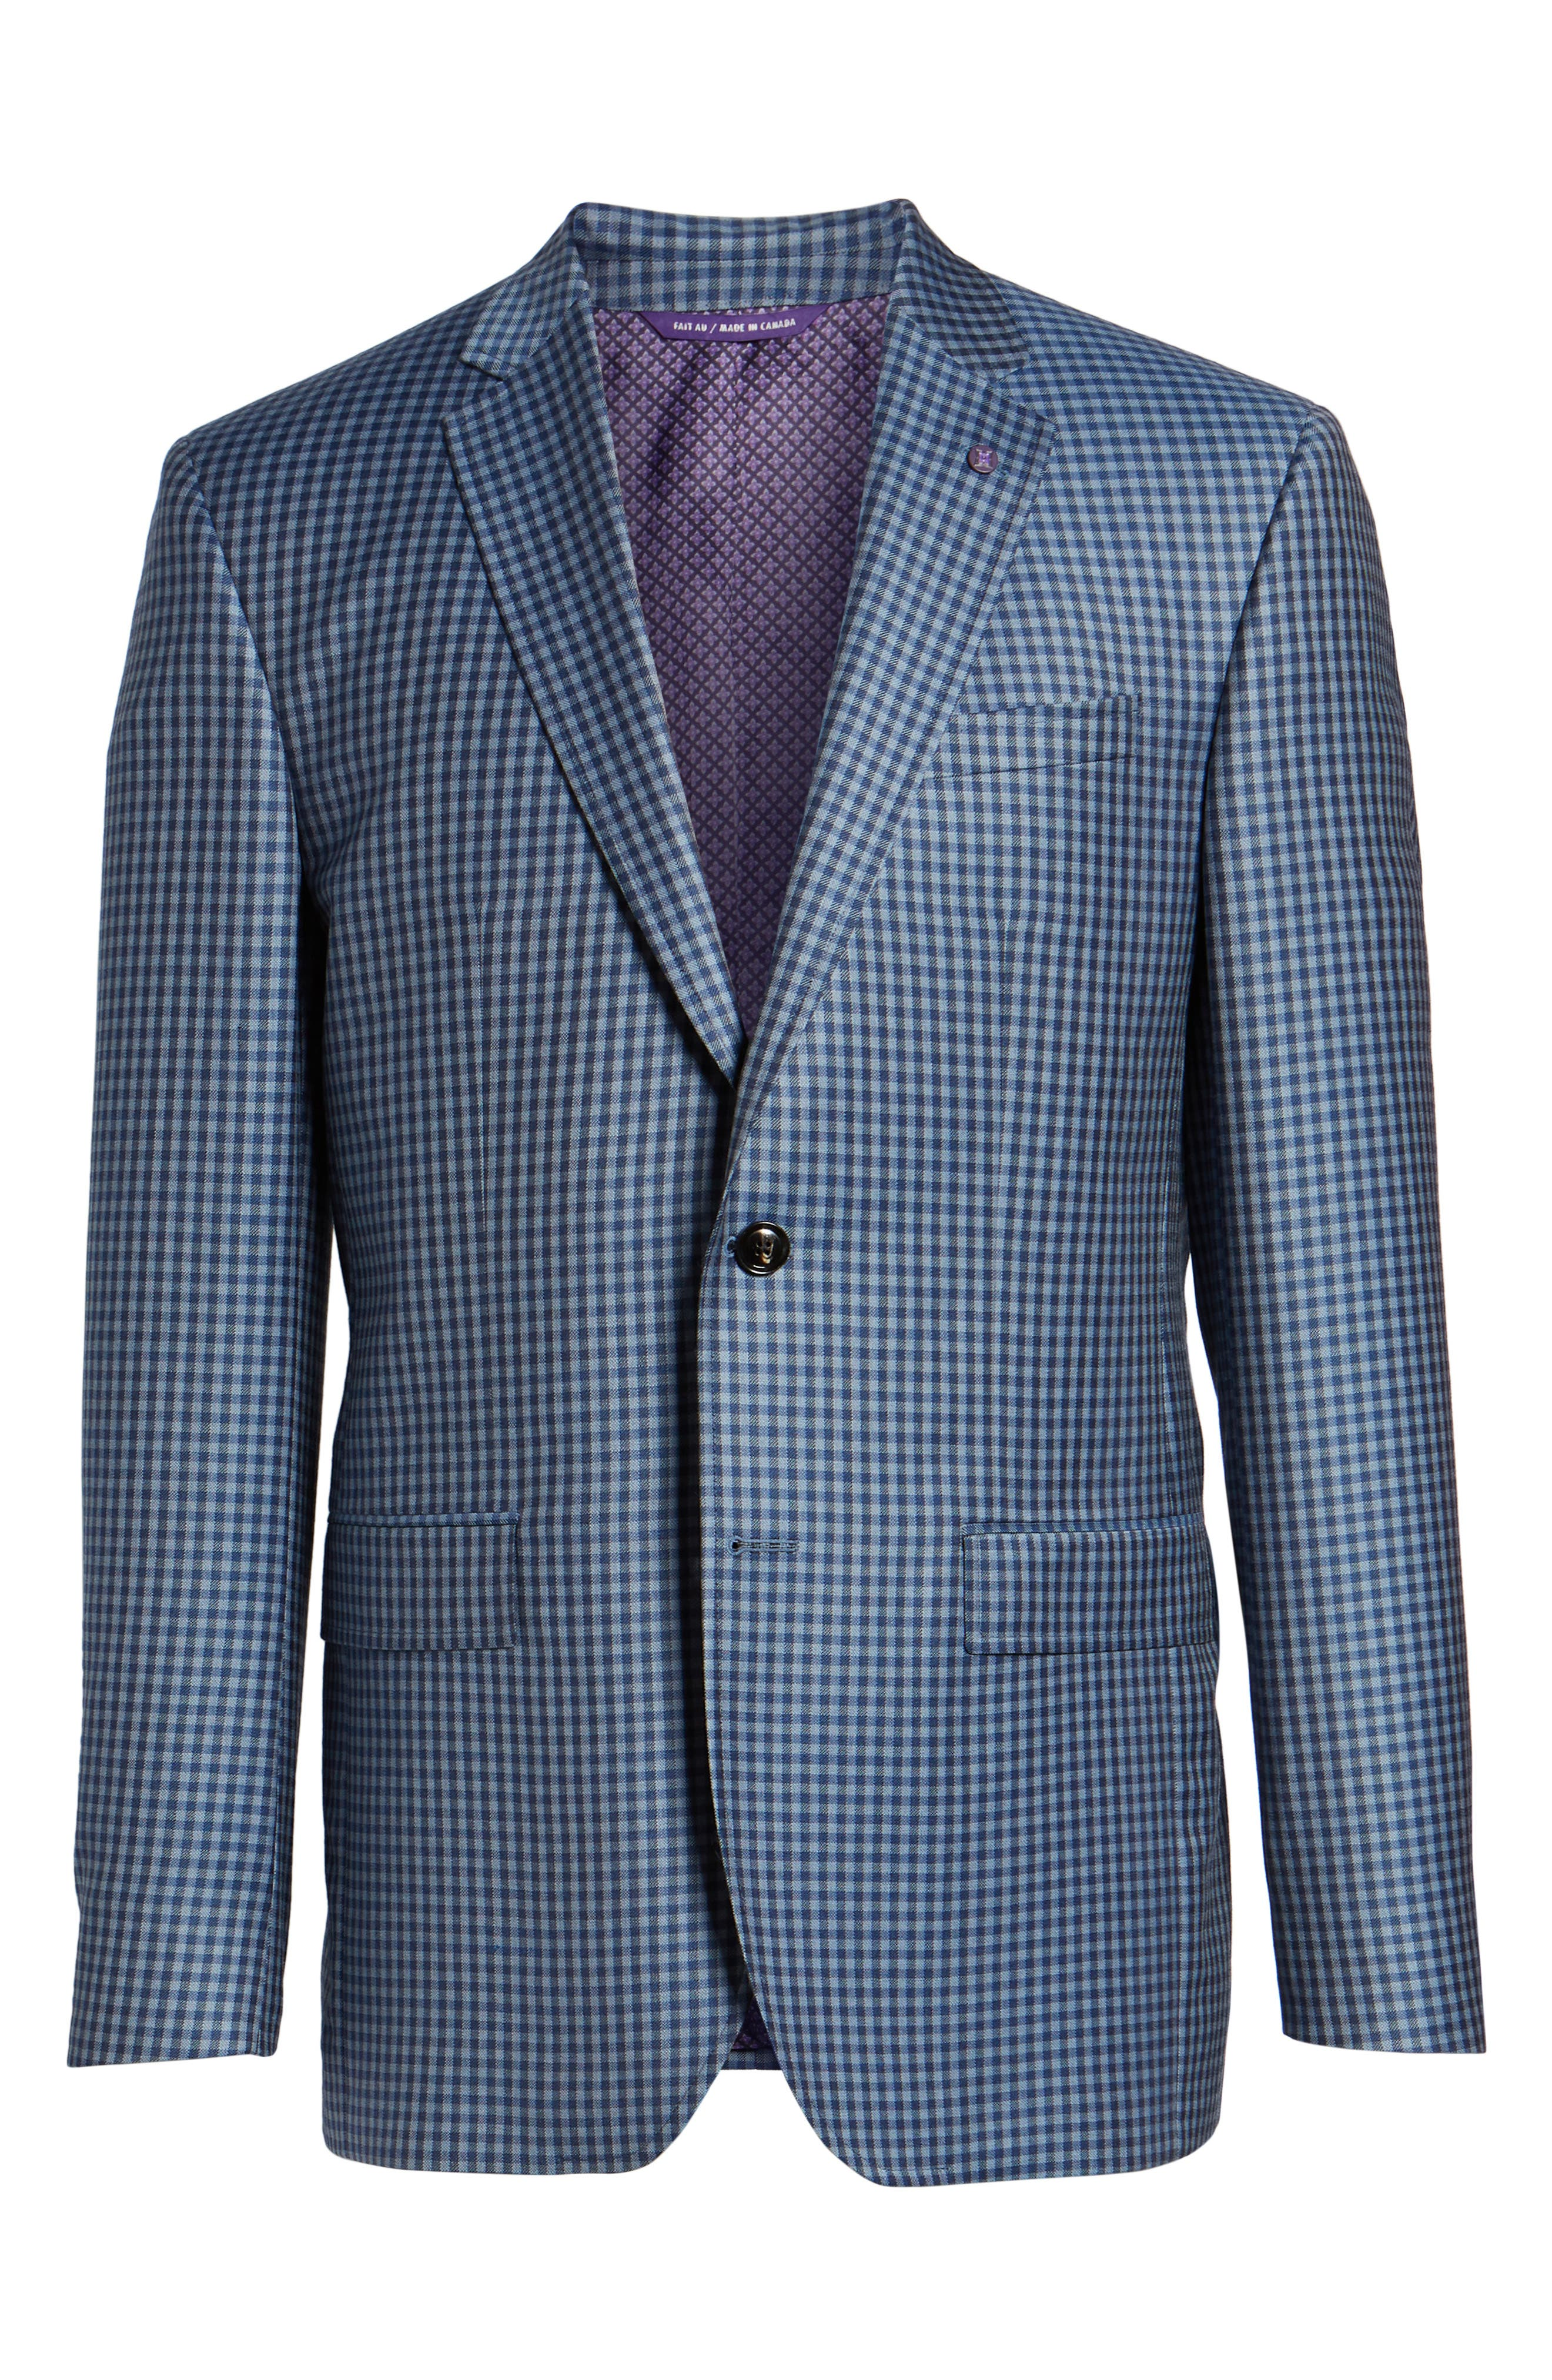 Jay Trim Fit Check Wool Sport Coat,                             Alternate thumbnail 5, color,